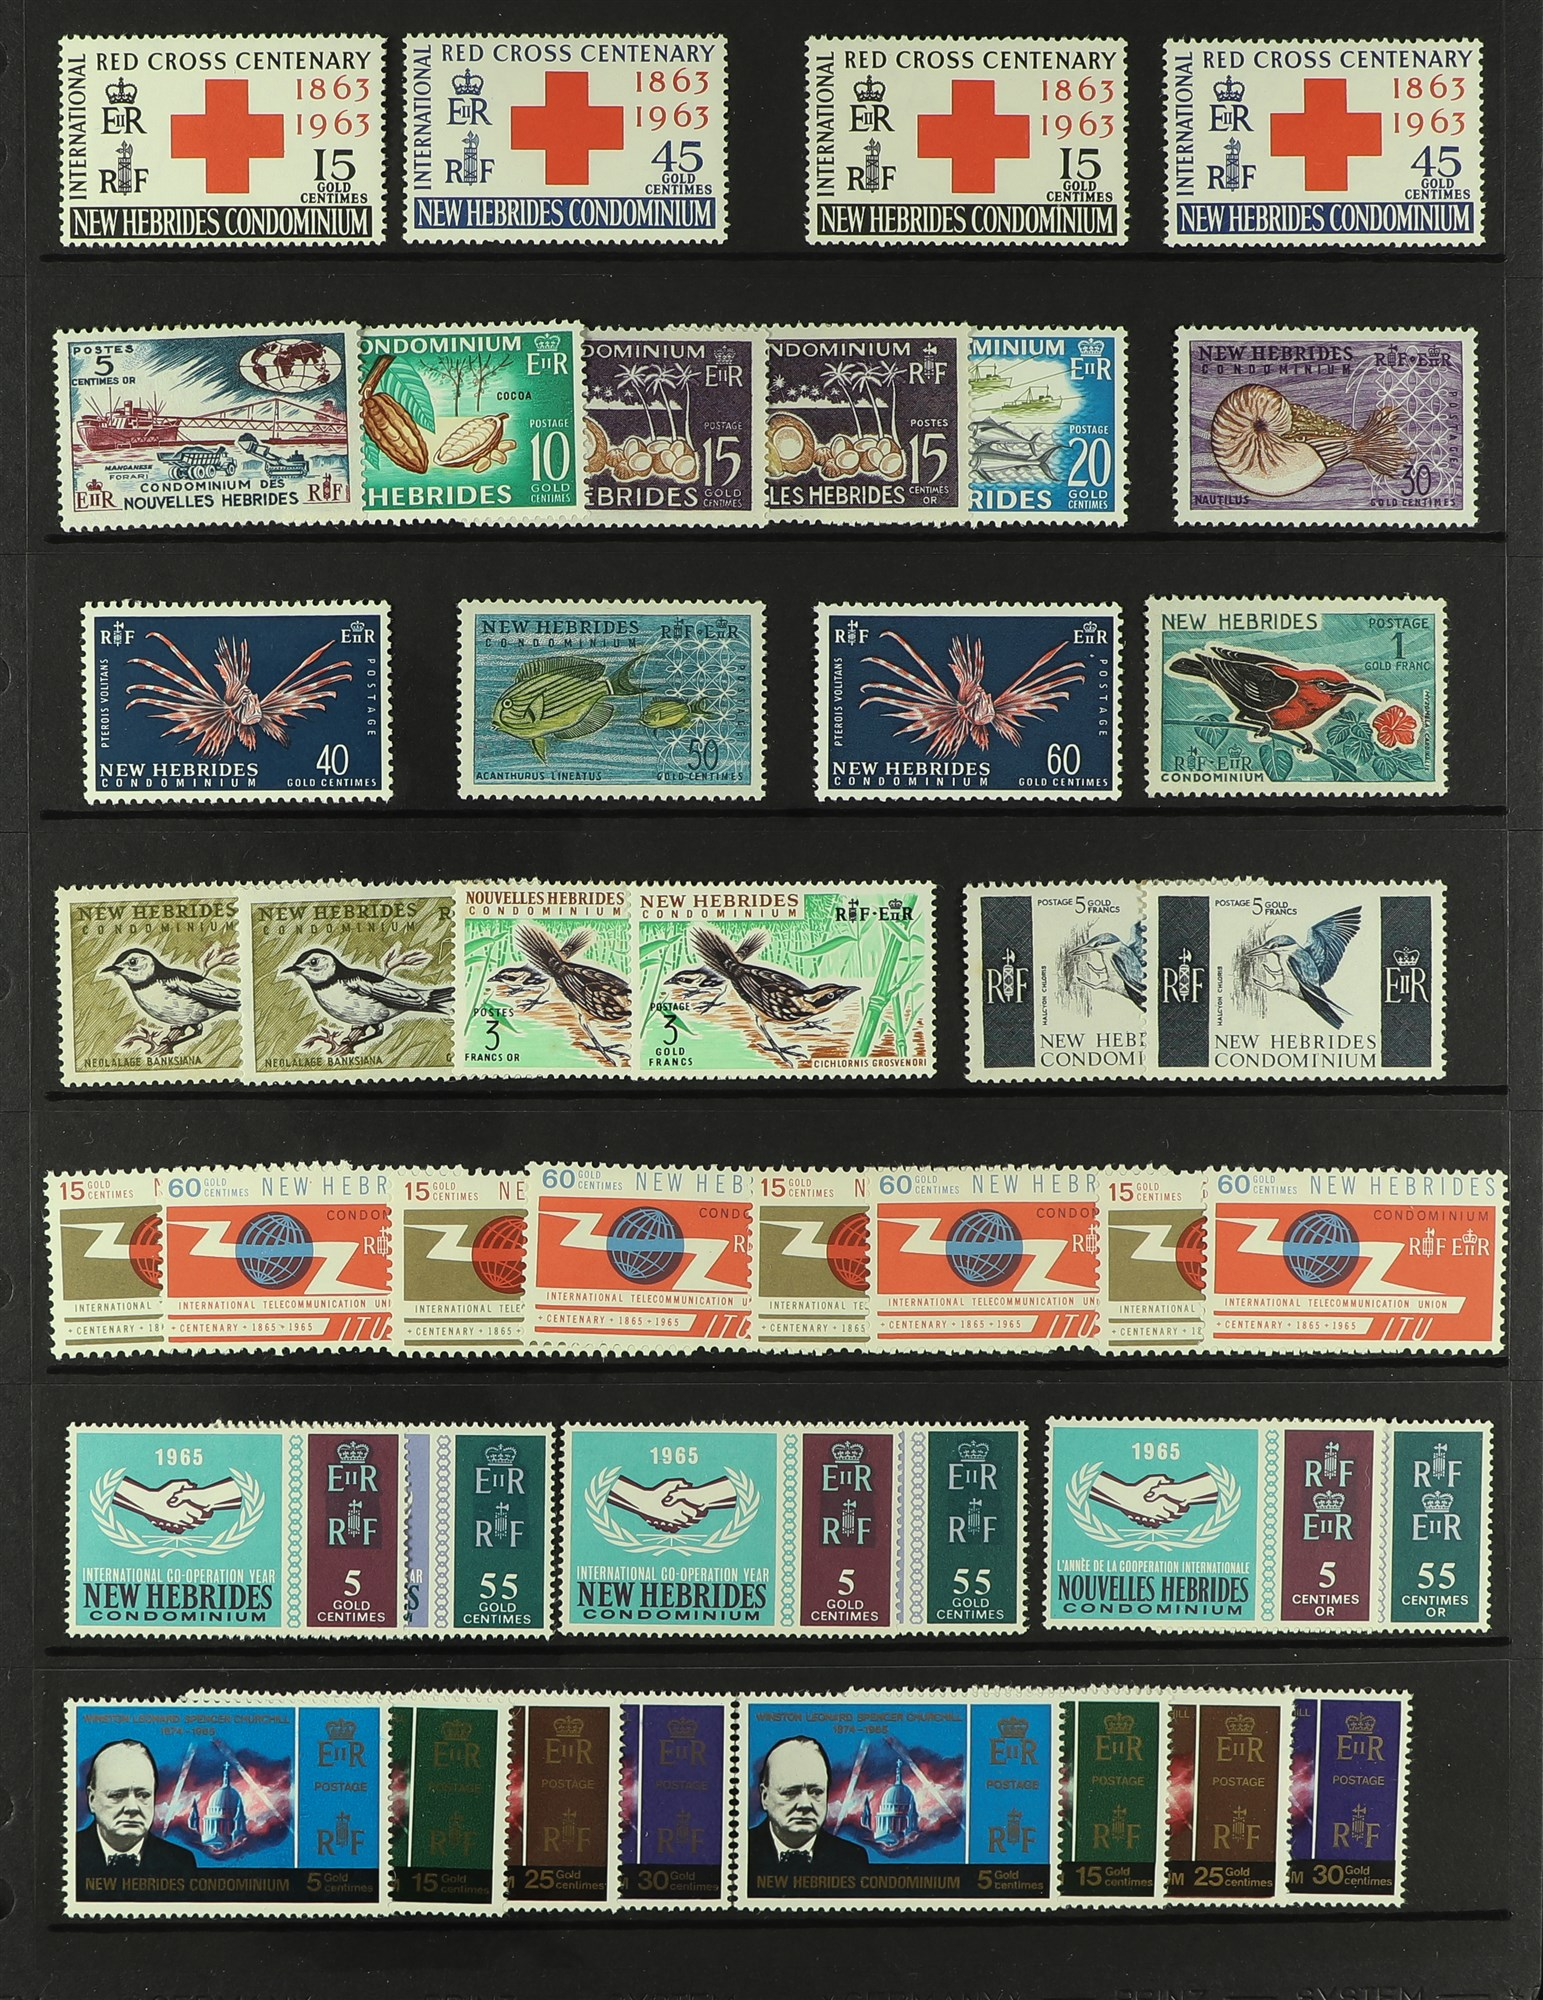 NEW HEBRIDES 1908-1990's STOCK BOOK of English & French lightly duplicated mint, nhm & a few used - Image 4 of 11